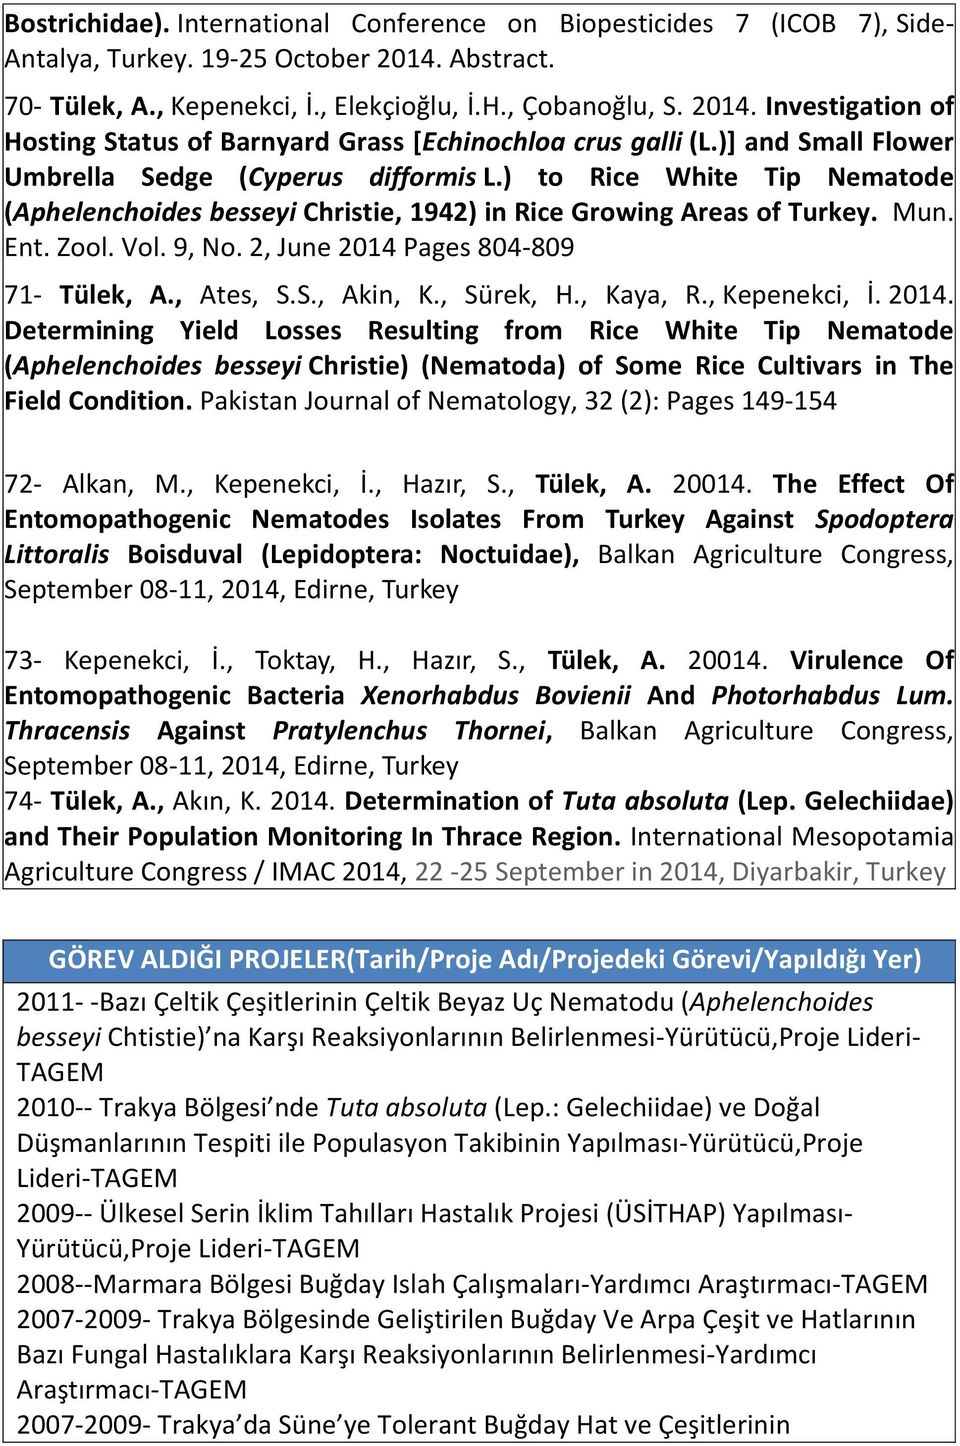 2, June 2014 Pages 804-809 71- Tülek, A., Ates, S.S., Akin, K., Sürek, H., Kaya, R., Kepenekci, İ. 2014. Determining Yield Losses Resulting from Rice White Tip Nematode (Aphelenchoides besseyi Christie) (Nematoda) of Some Rice Cultivars in The Field Condition.